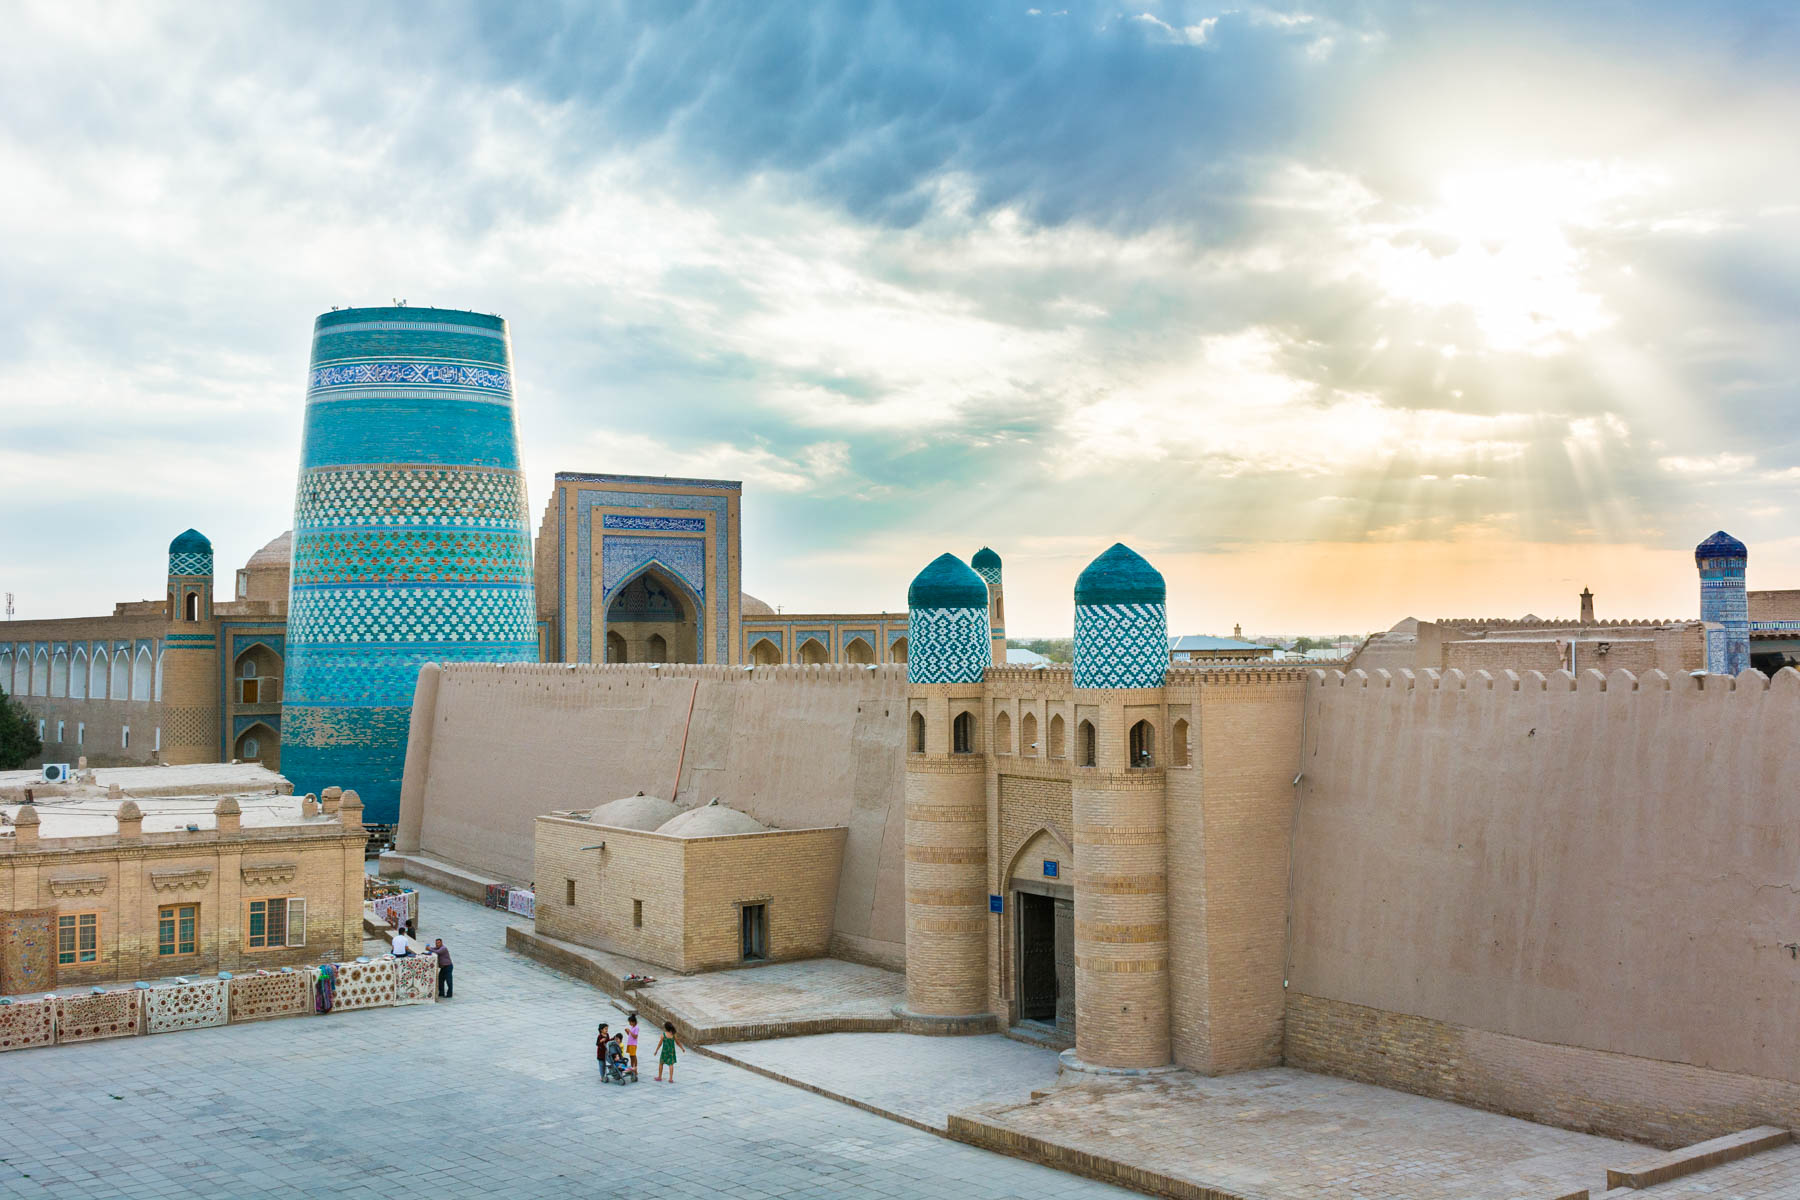 The sun breaking through the clouds over Khiva